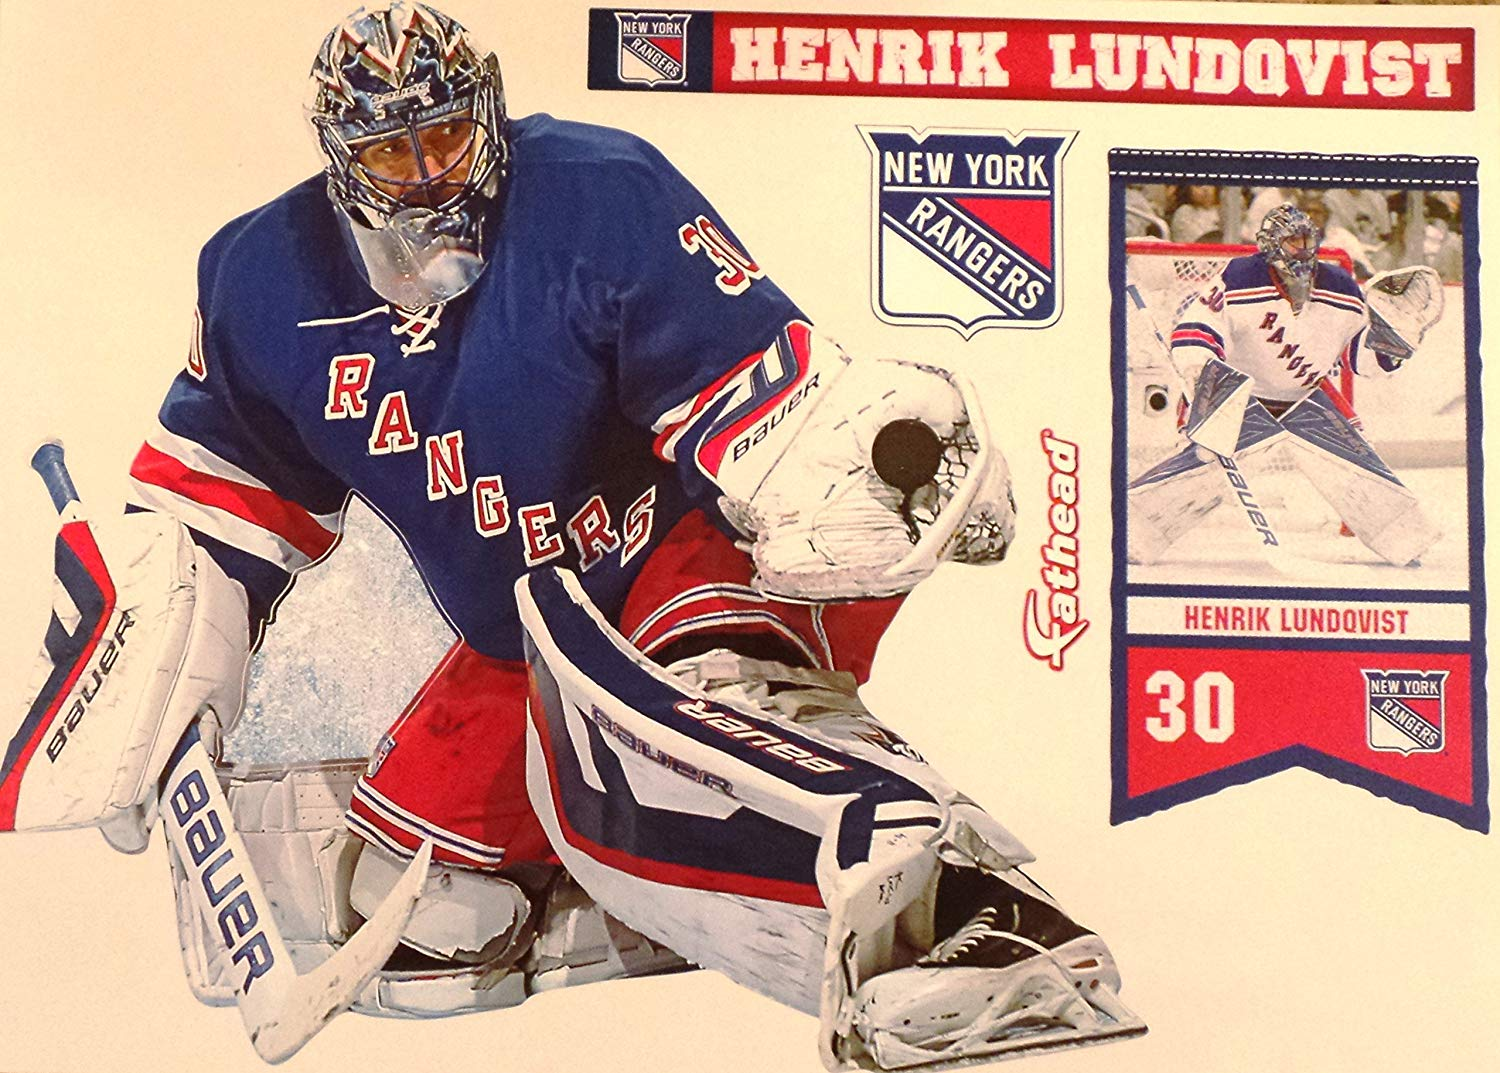 Fathead Henrik Lundqvist New York Rangers Logo Set New York